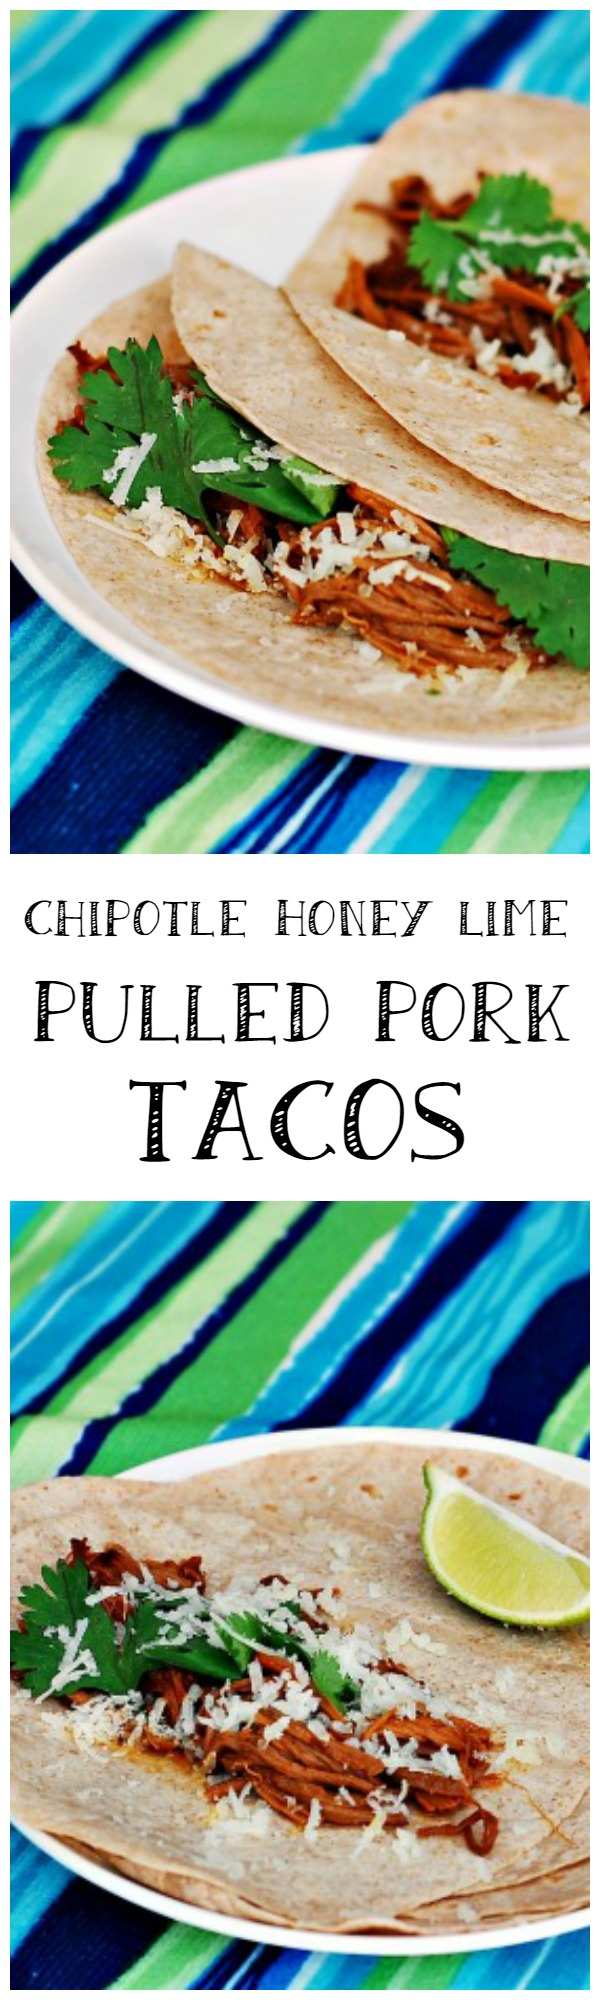 """Man Food"" is all about big bold flavors, and these chipotle honey lime pulled pork tacos deliver! Make them for the dad in your life this #FathersDay 